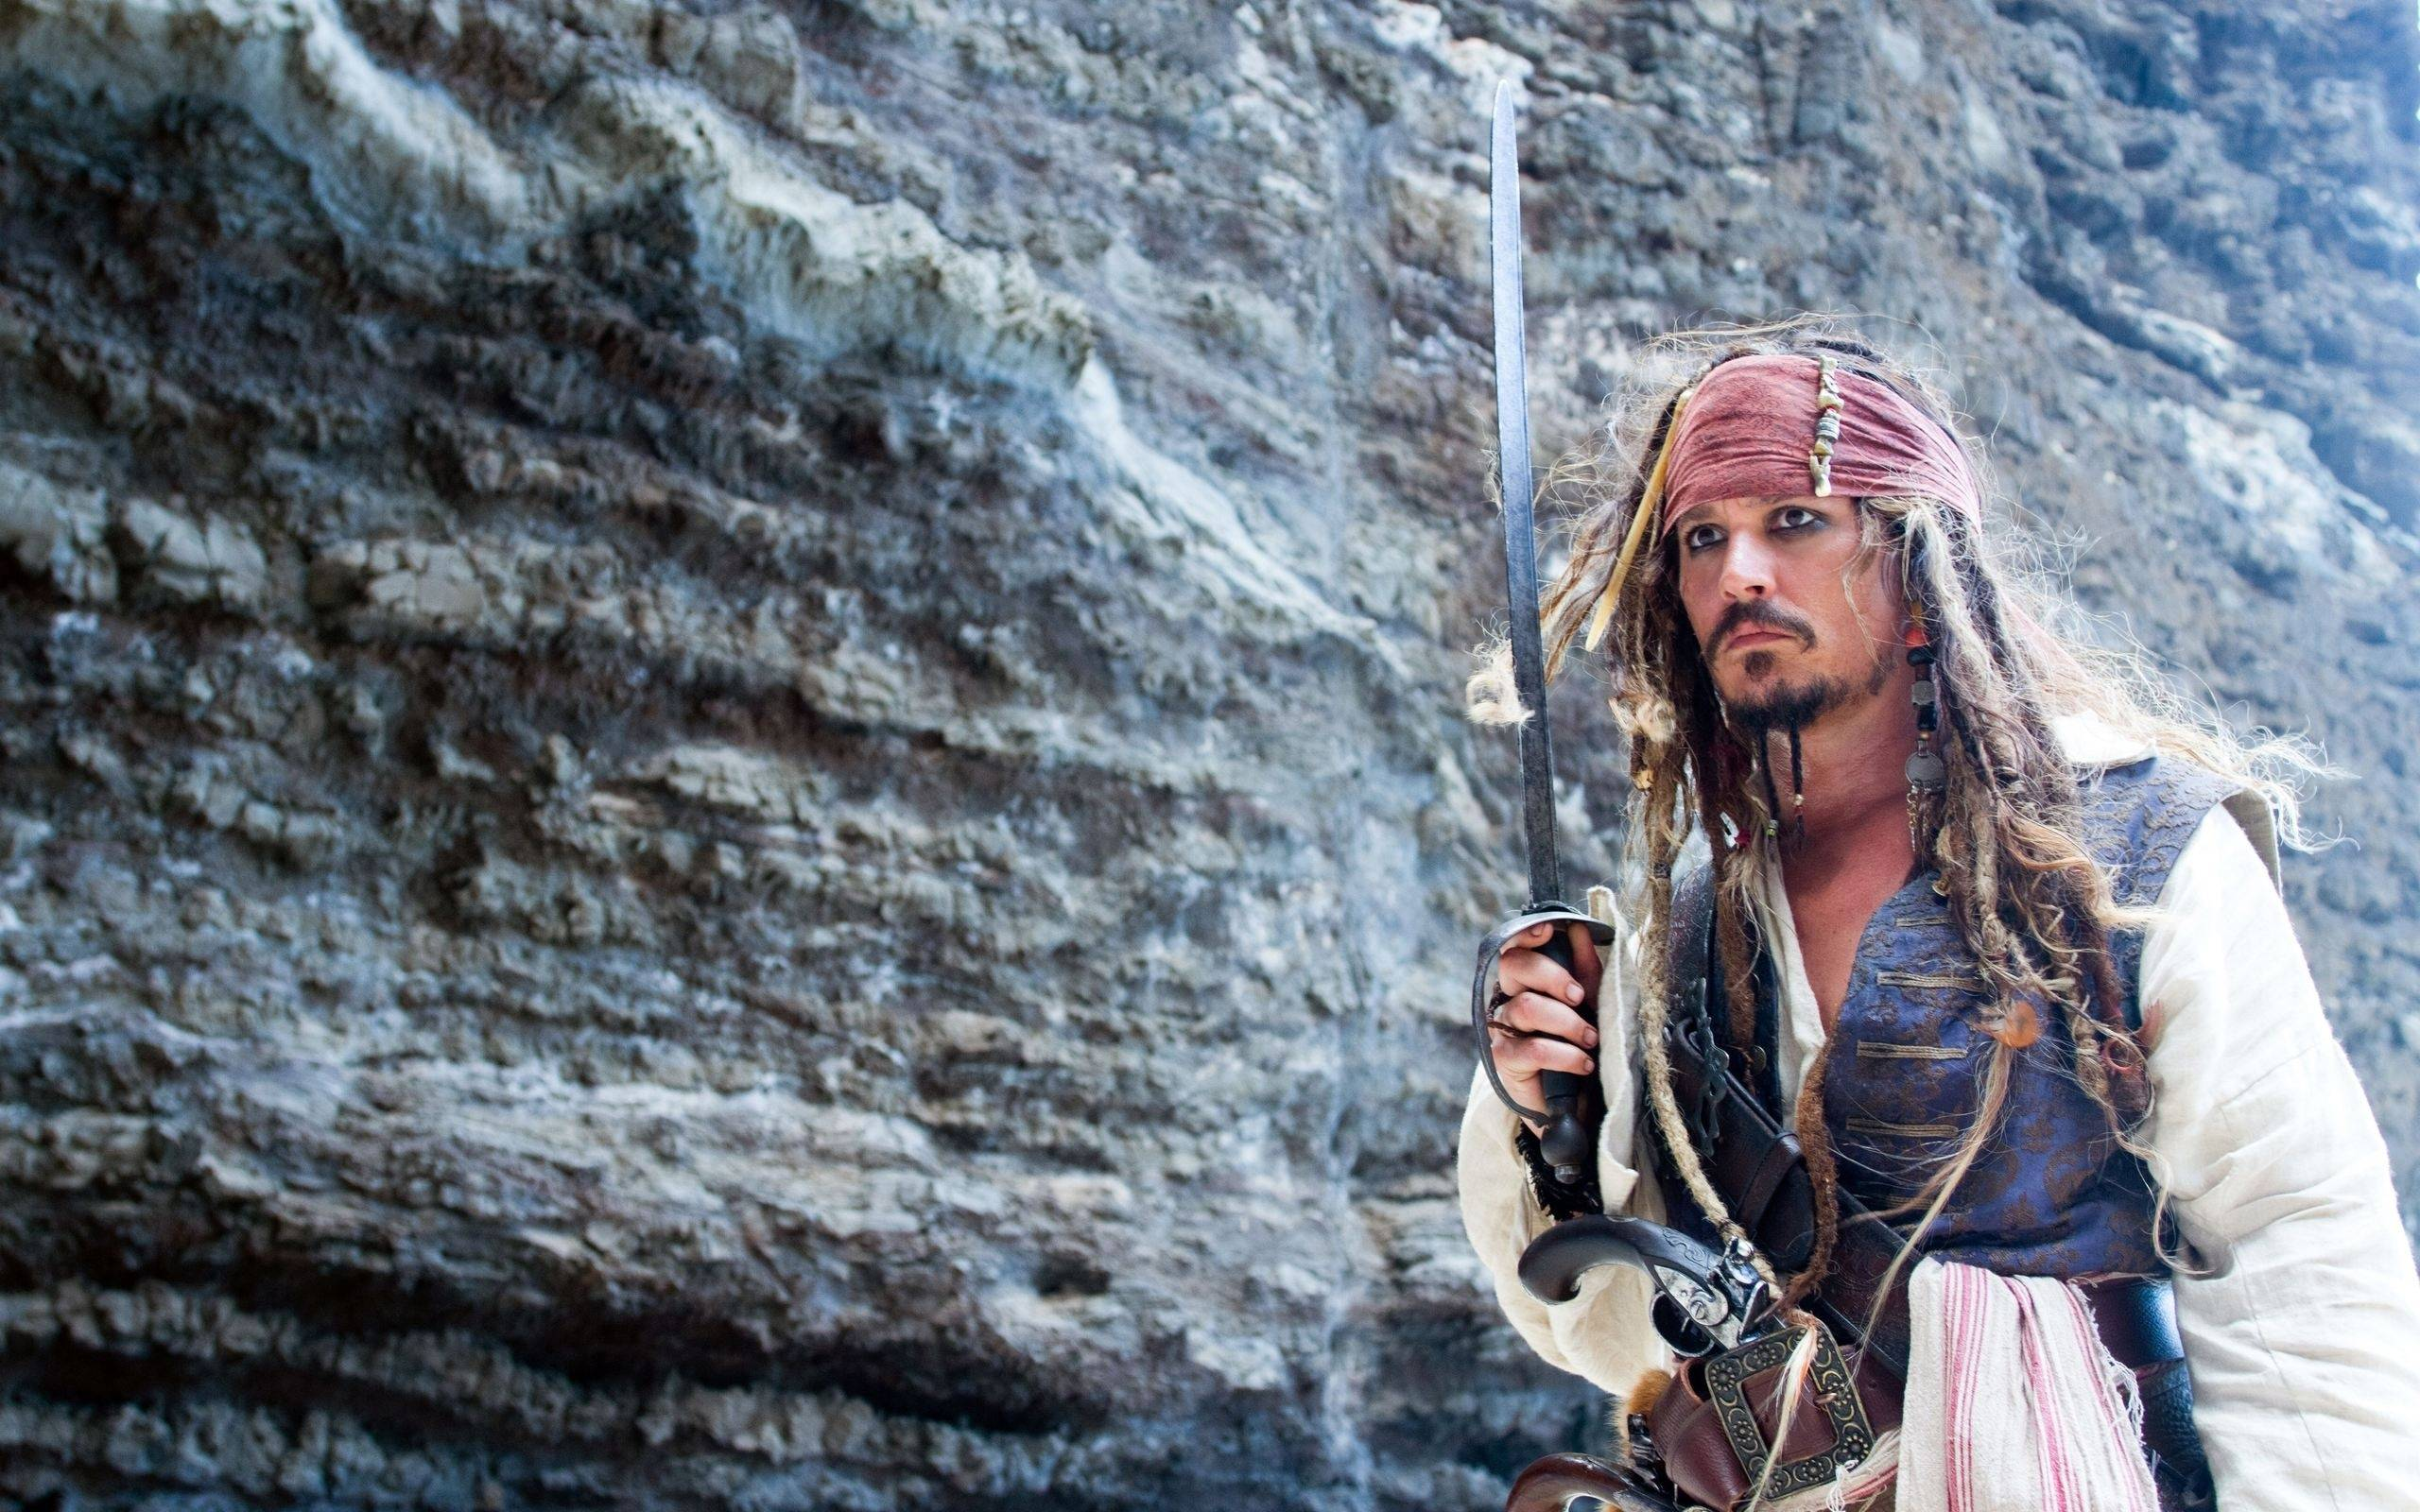 Jack sparrow wallpapers high quality download free jack sparrow wallpapers altavistaventures Image collections